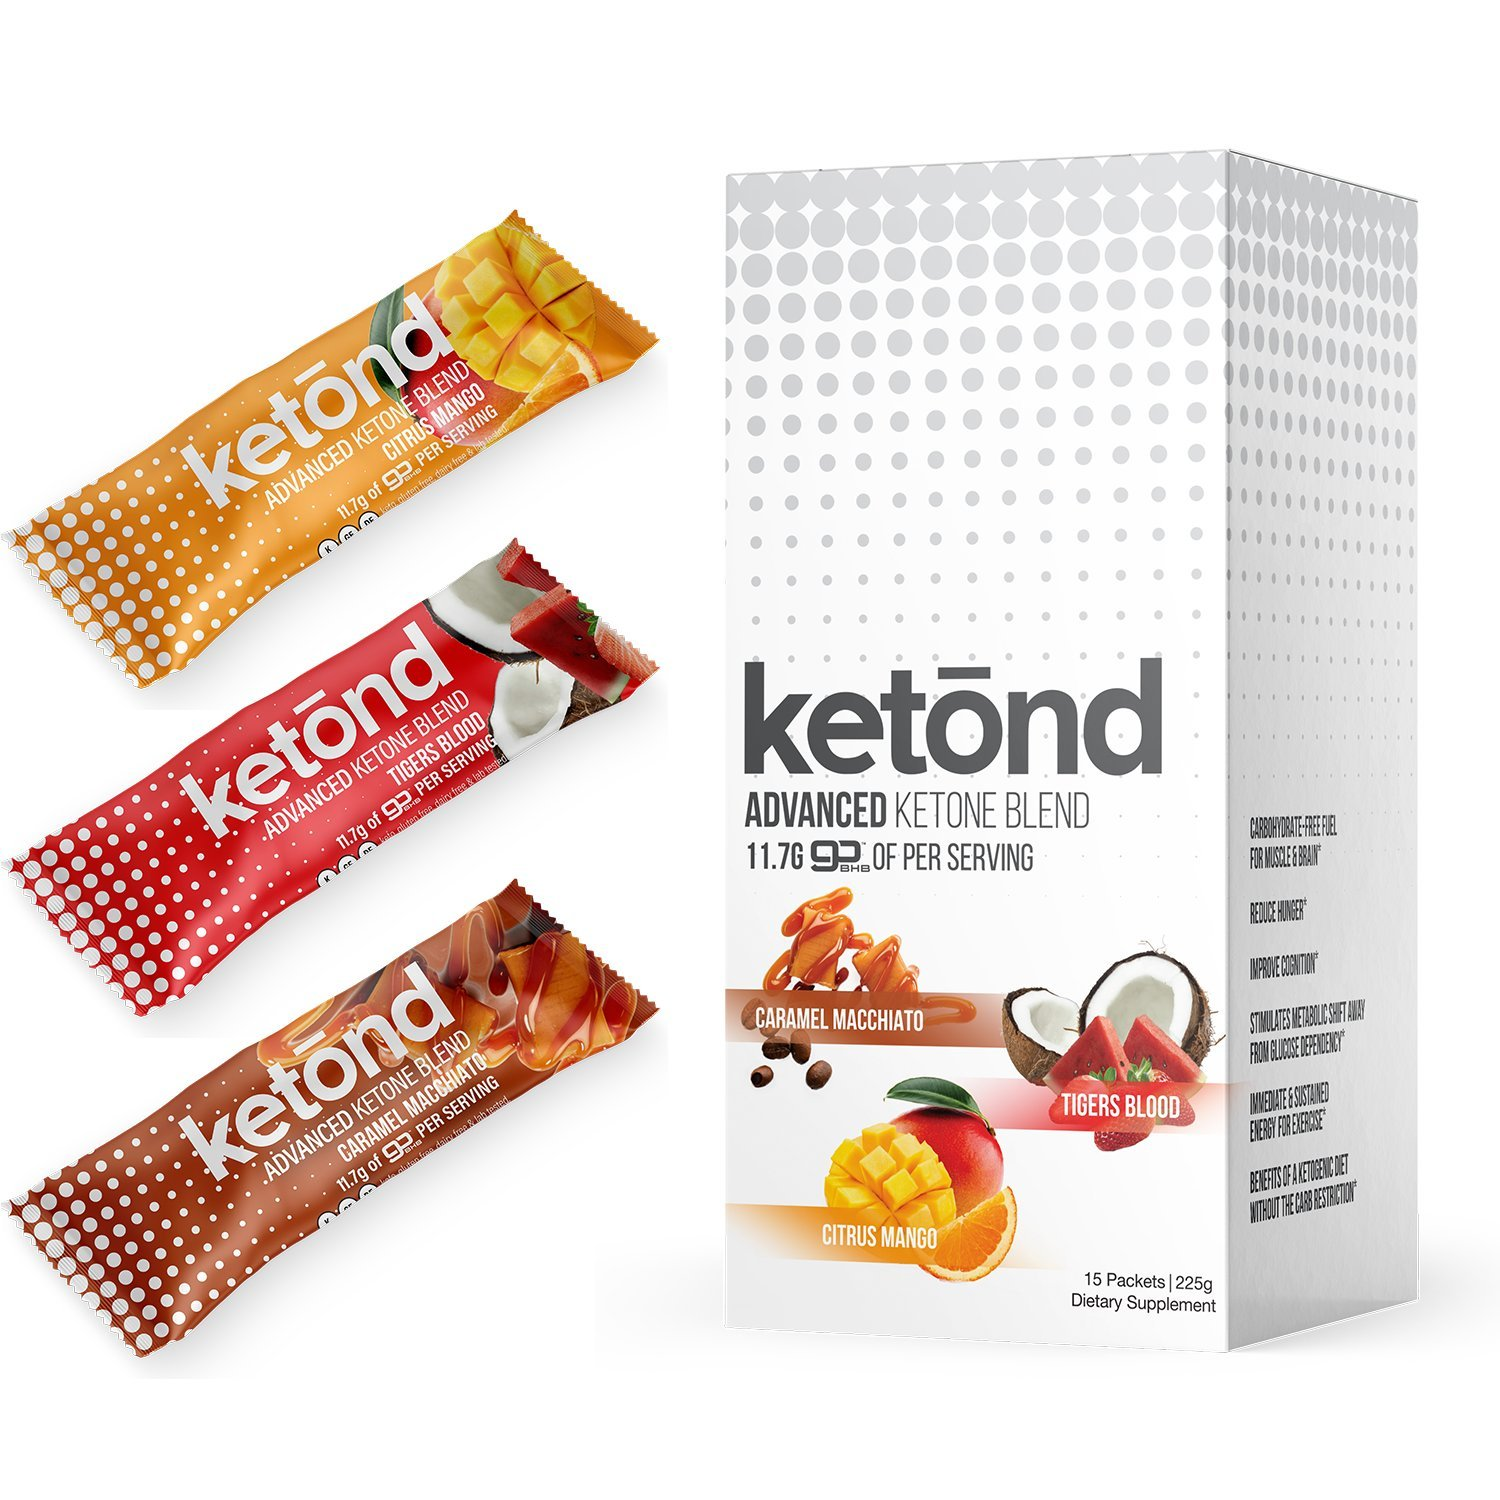 Ketond Advanced Ketone Supplement - 15 'On the Go' Packs - Exogenous Ketone Supplement 11.7g of BHB (Beta-Hydroxybutyrate) Salts to Lose Weight (Caramel Macchiato, Tigers Blood, Citrus Mango)